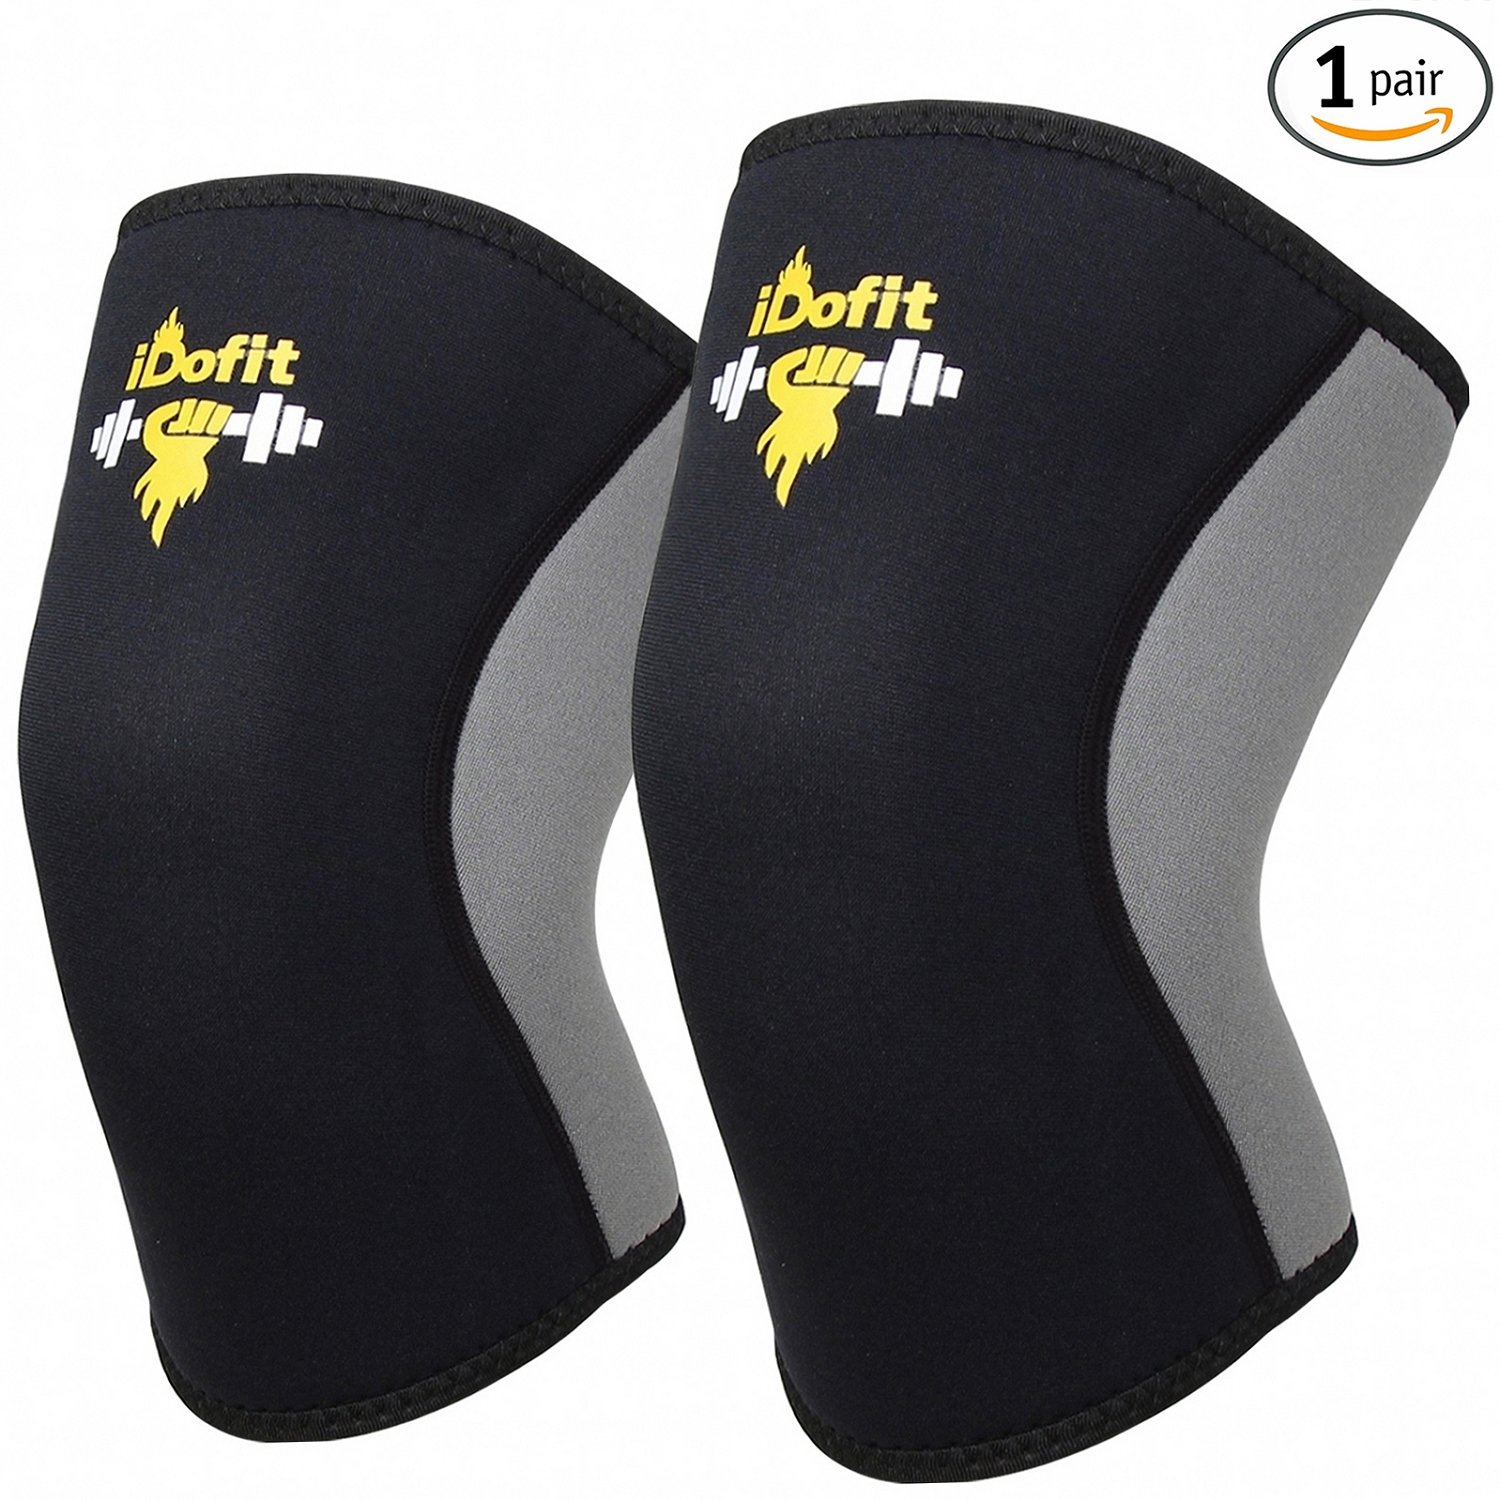 #3. iDofit Knee Sleeves Support & Compression for Weightlifting, Powerlifting